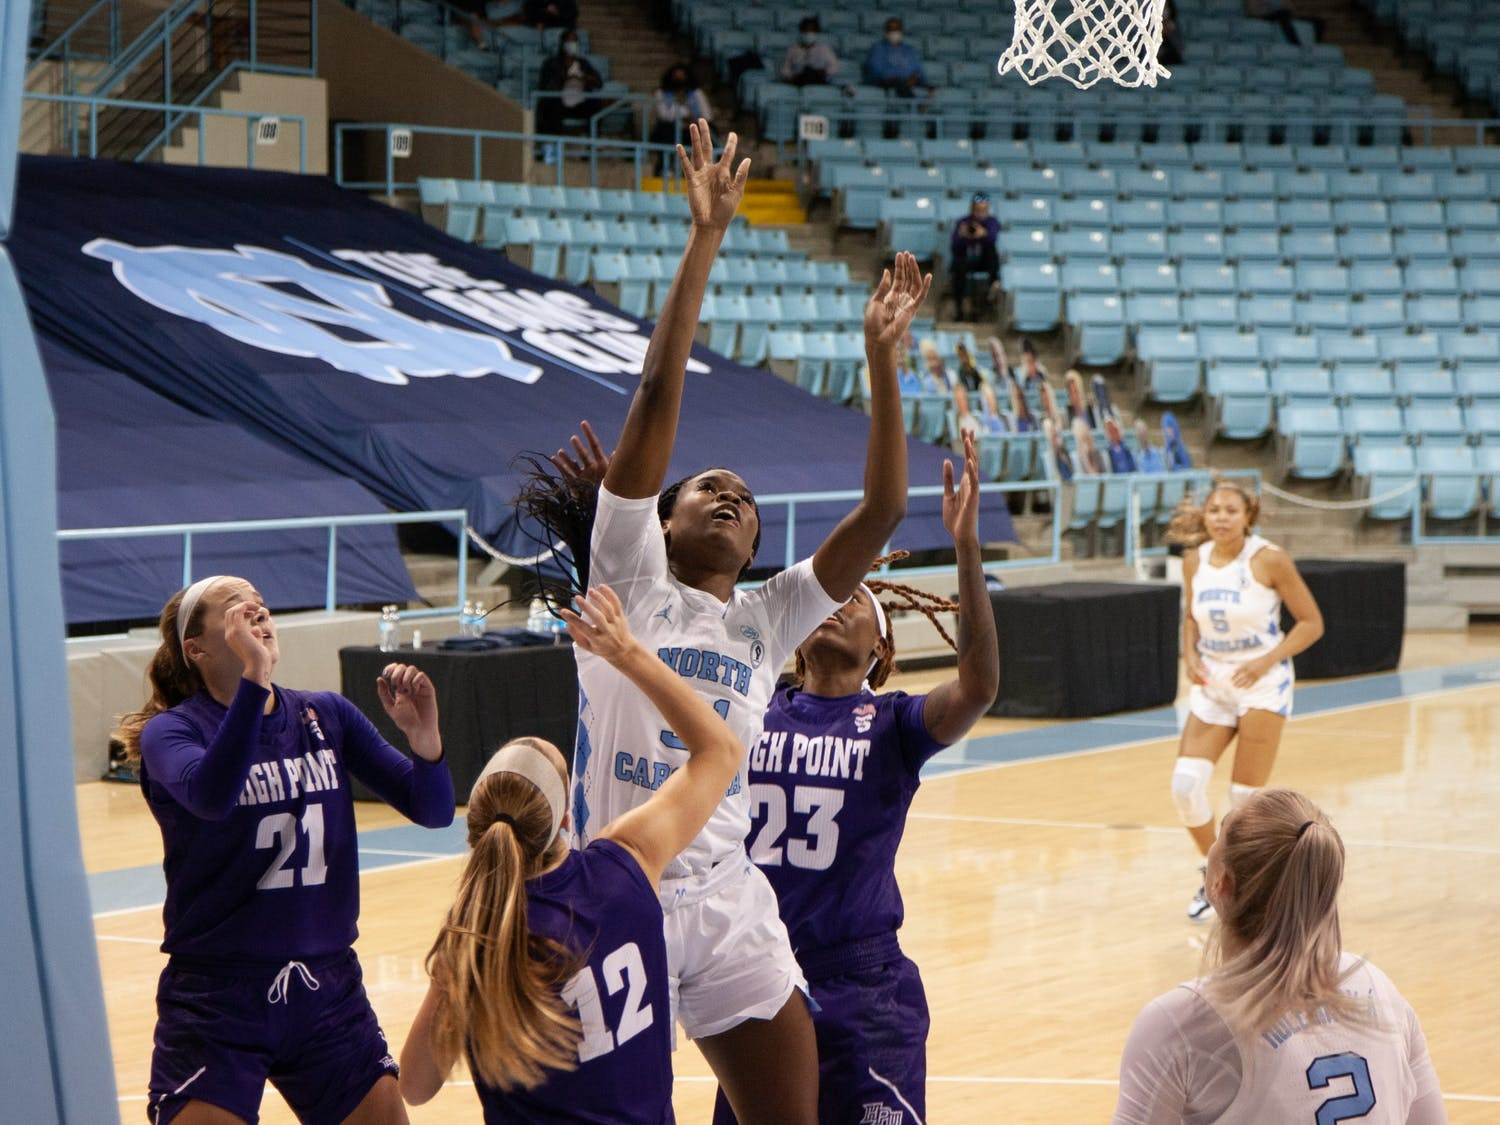 UNC first year forward Anya Poole (31) attempts a put-back shot during Carolina's 95-70 victory over High Point at Carmichael Arena on November 29th, 2020.